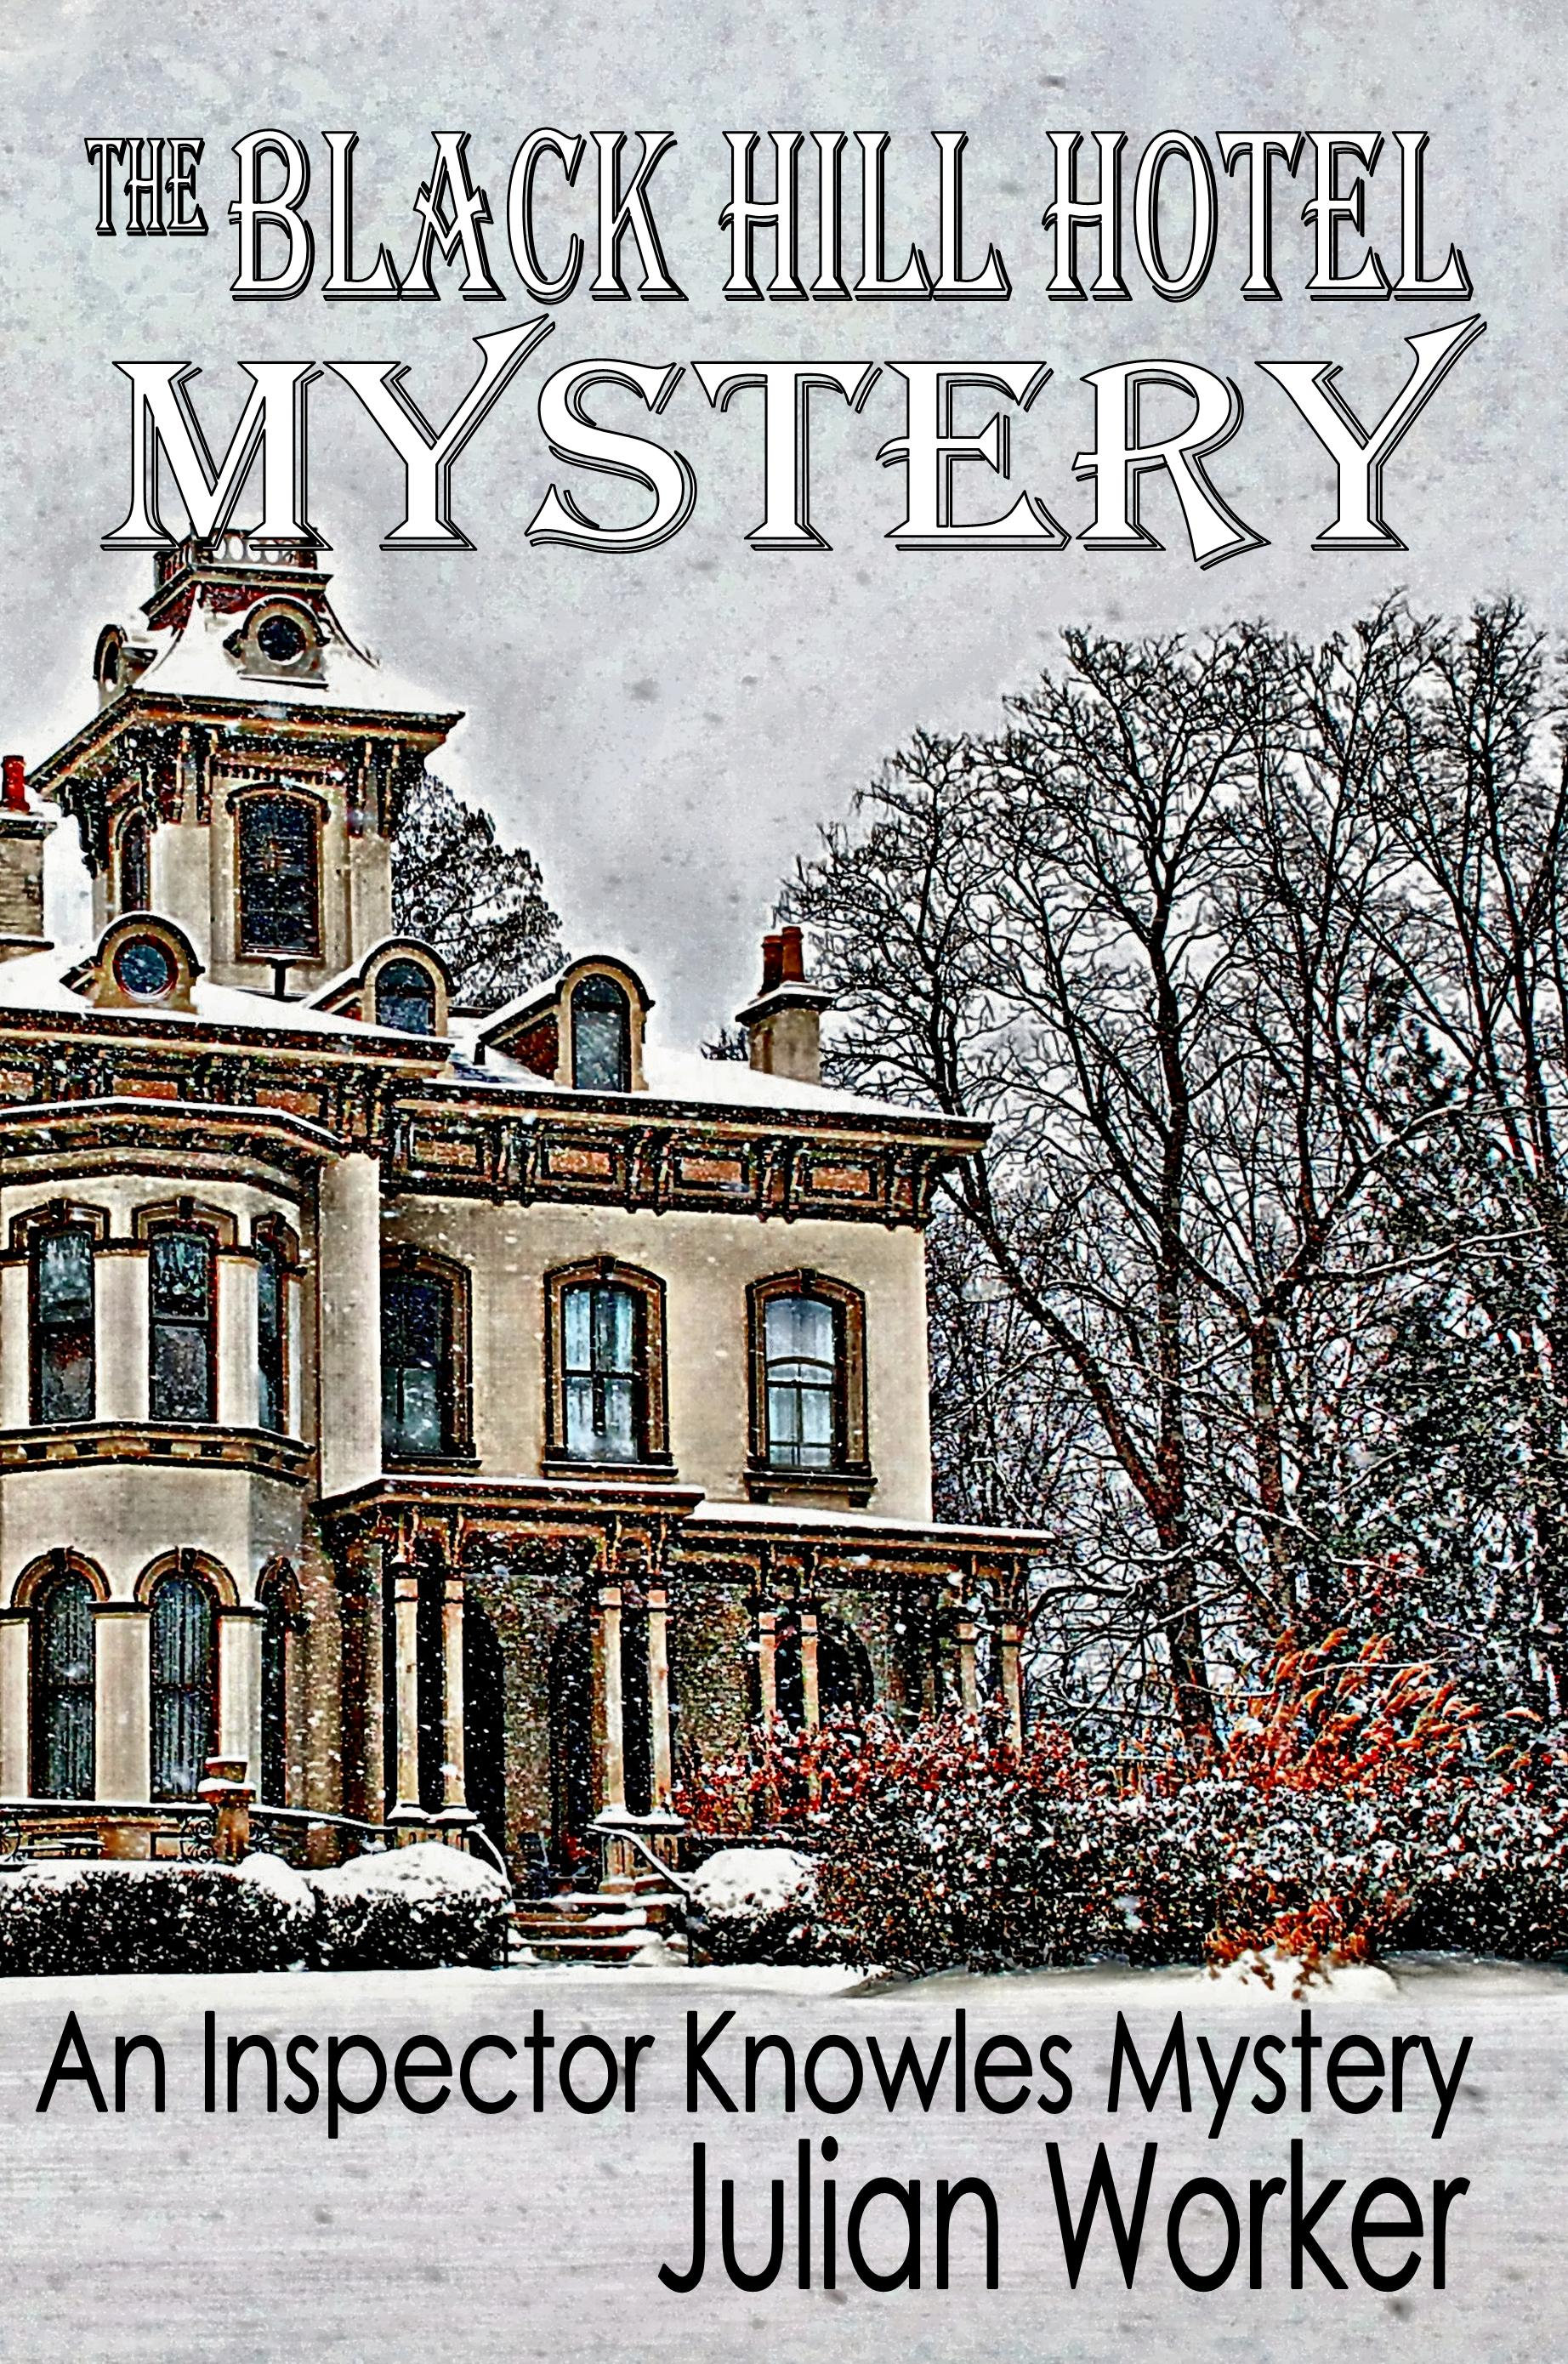 The Black Hill Hotel Mystery – 13